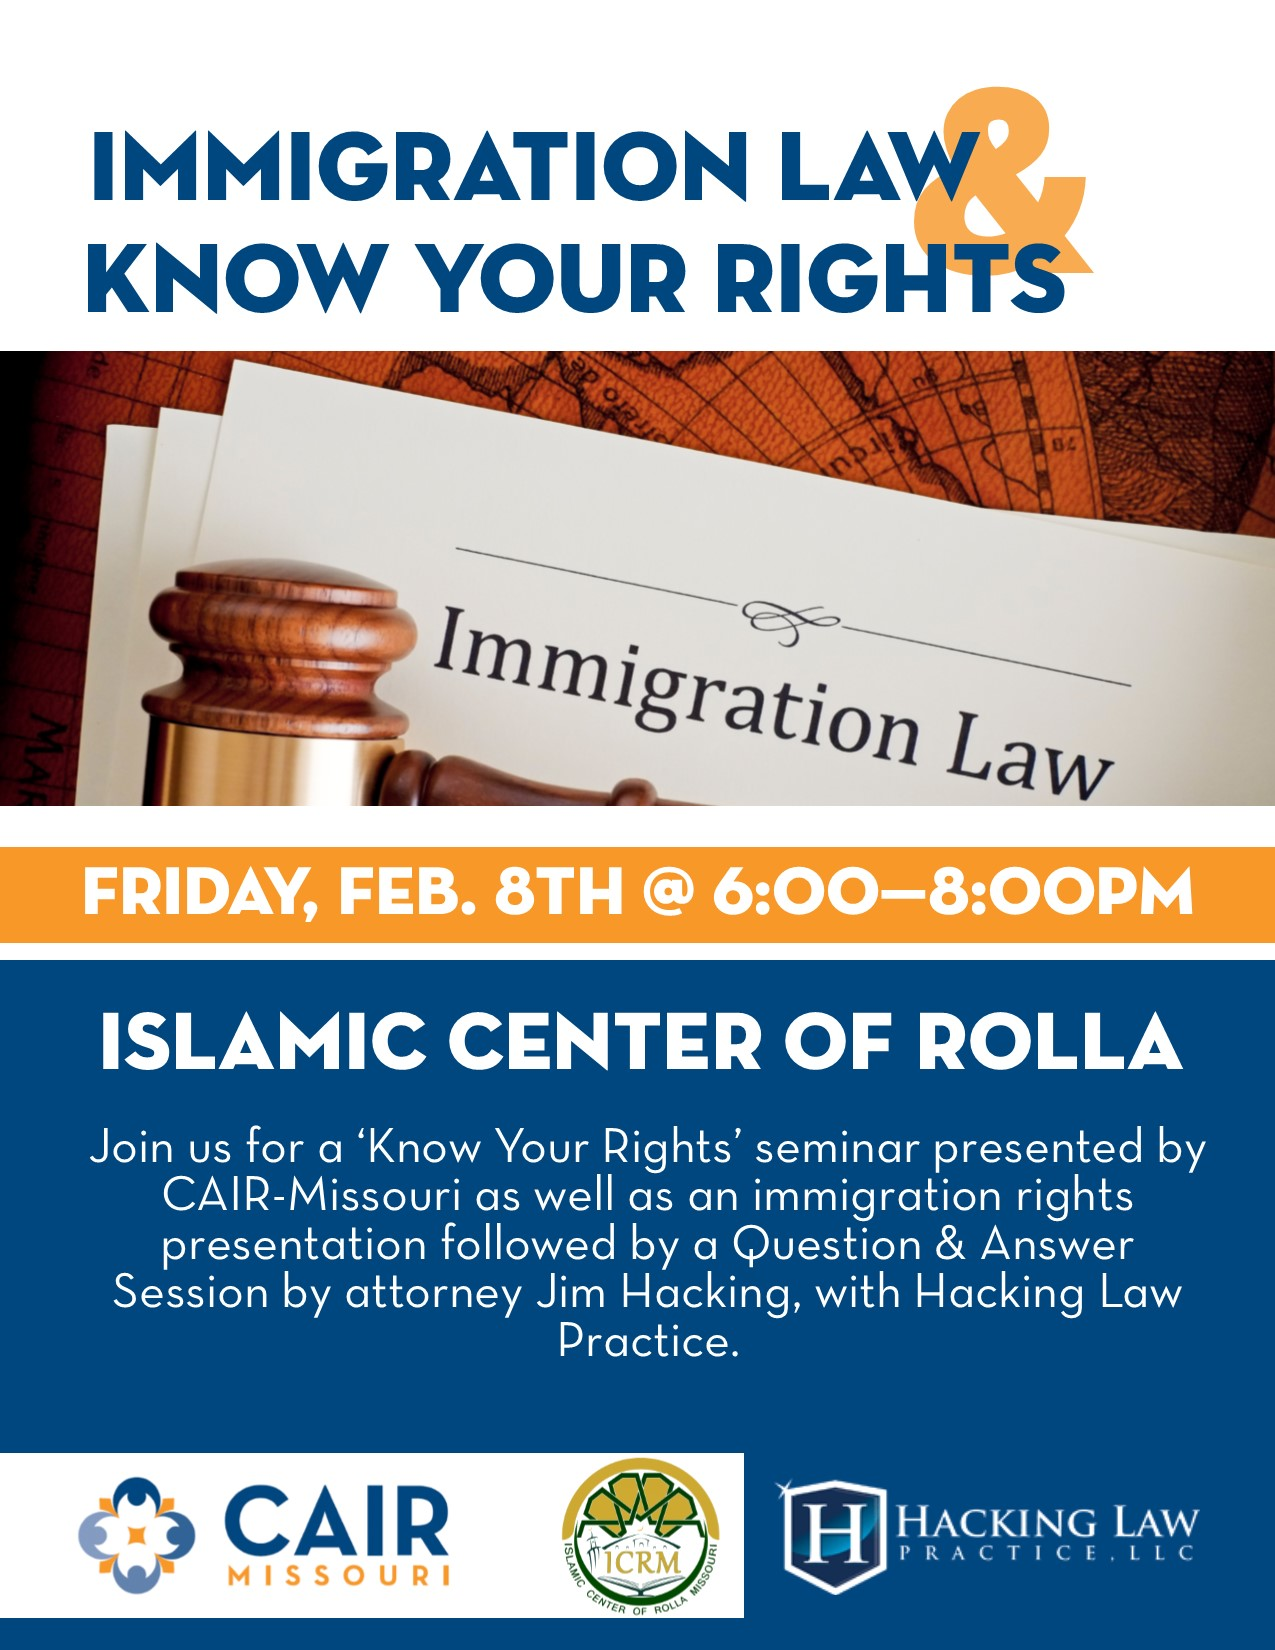 Rolla Islamic Center Flyer CAIR Missouri